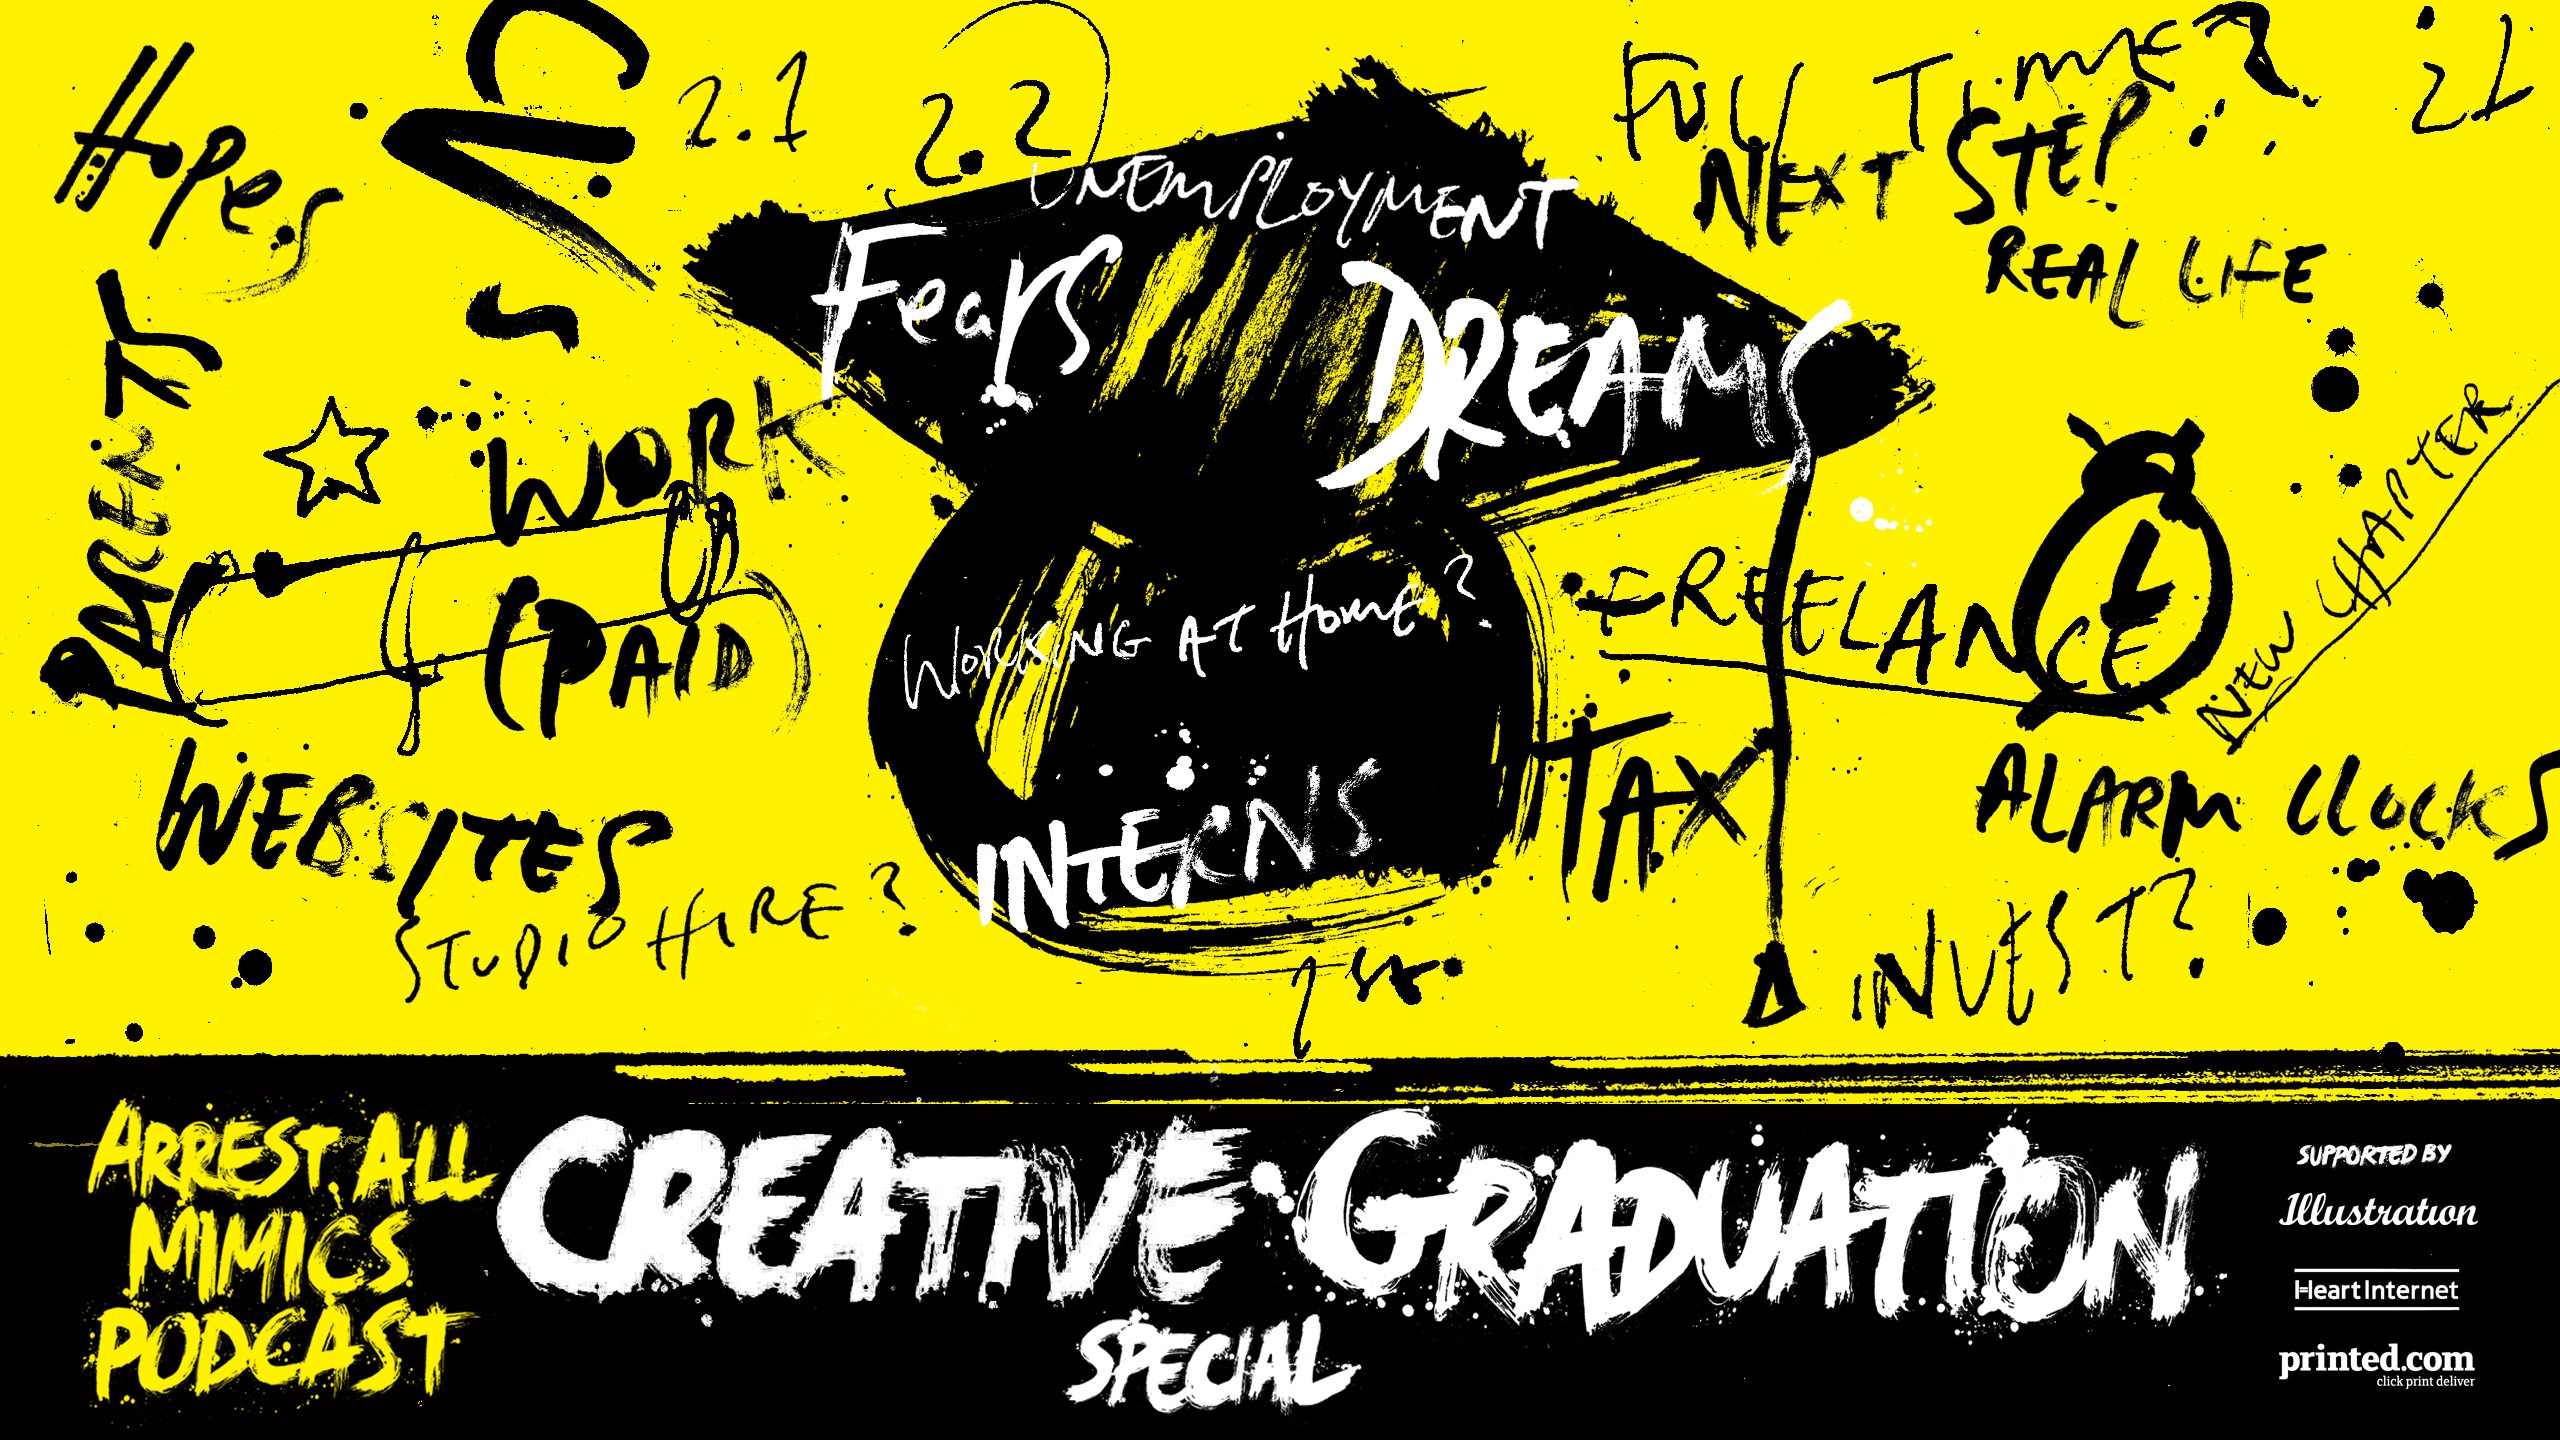 Arrest all mimics podcast creative graduation special artwork in yellow and black